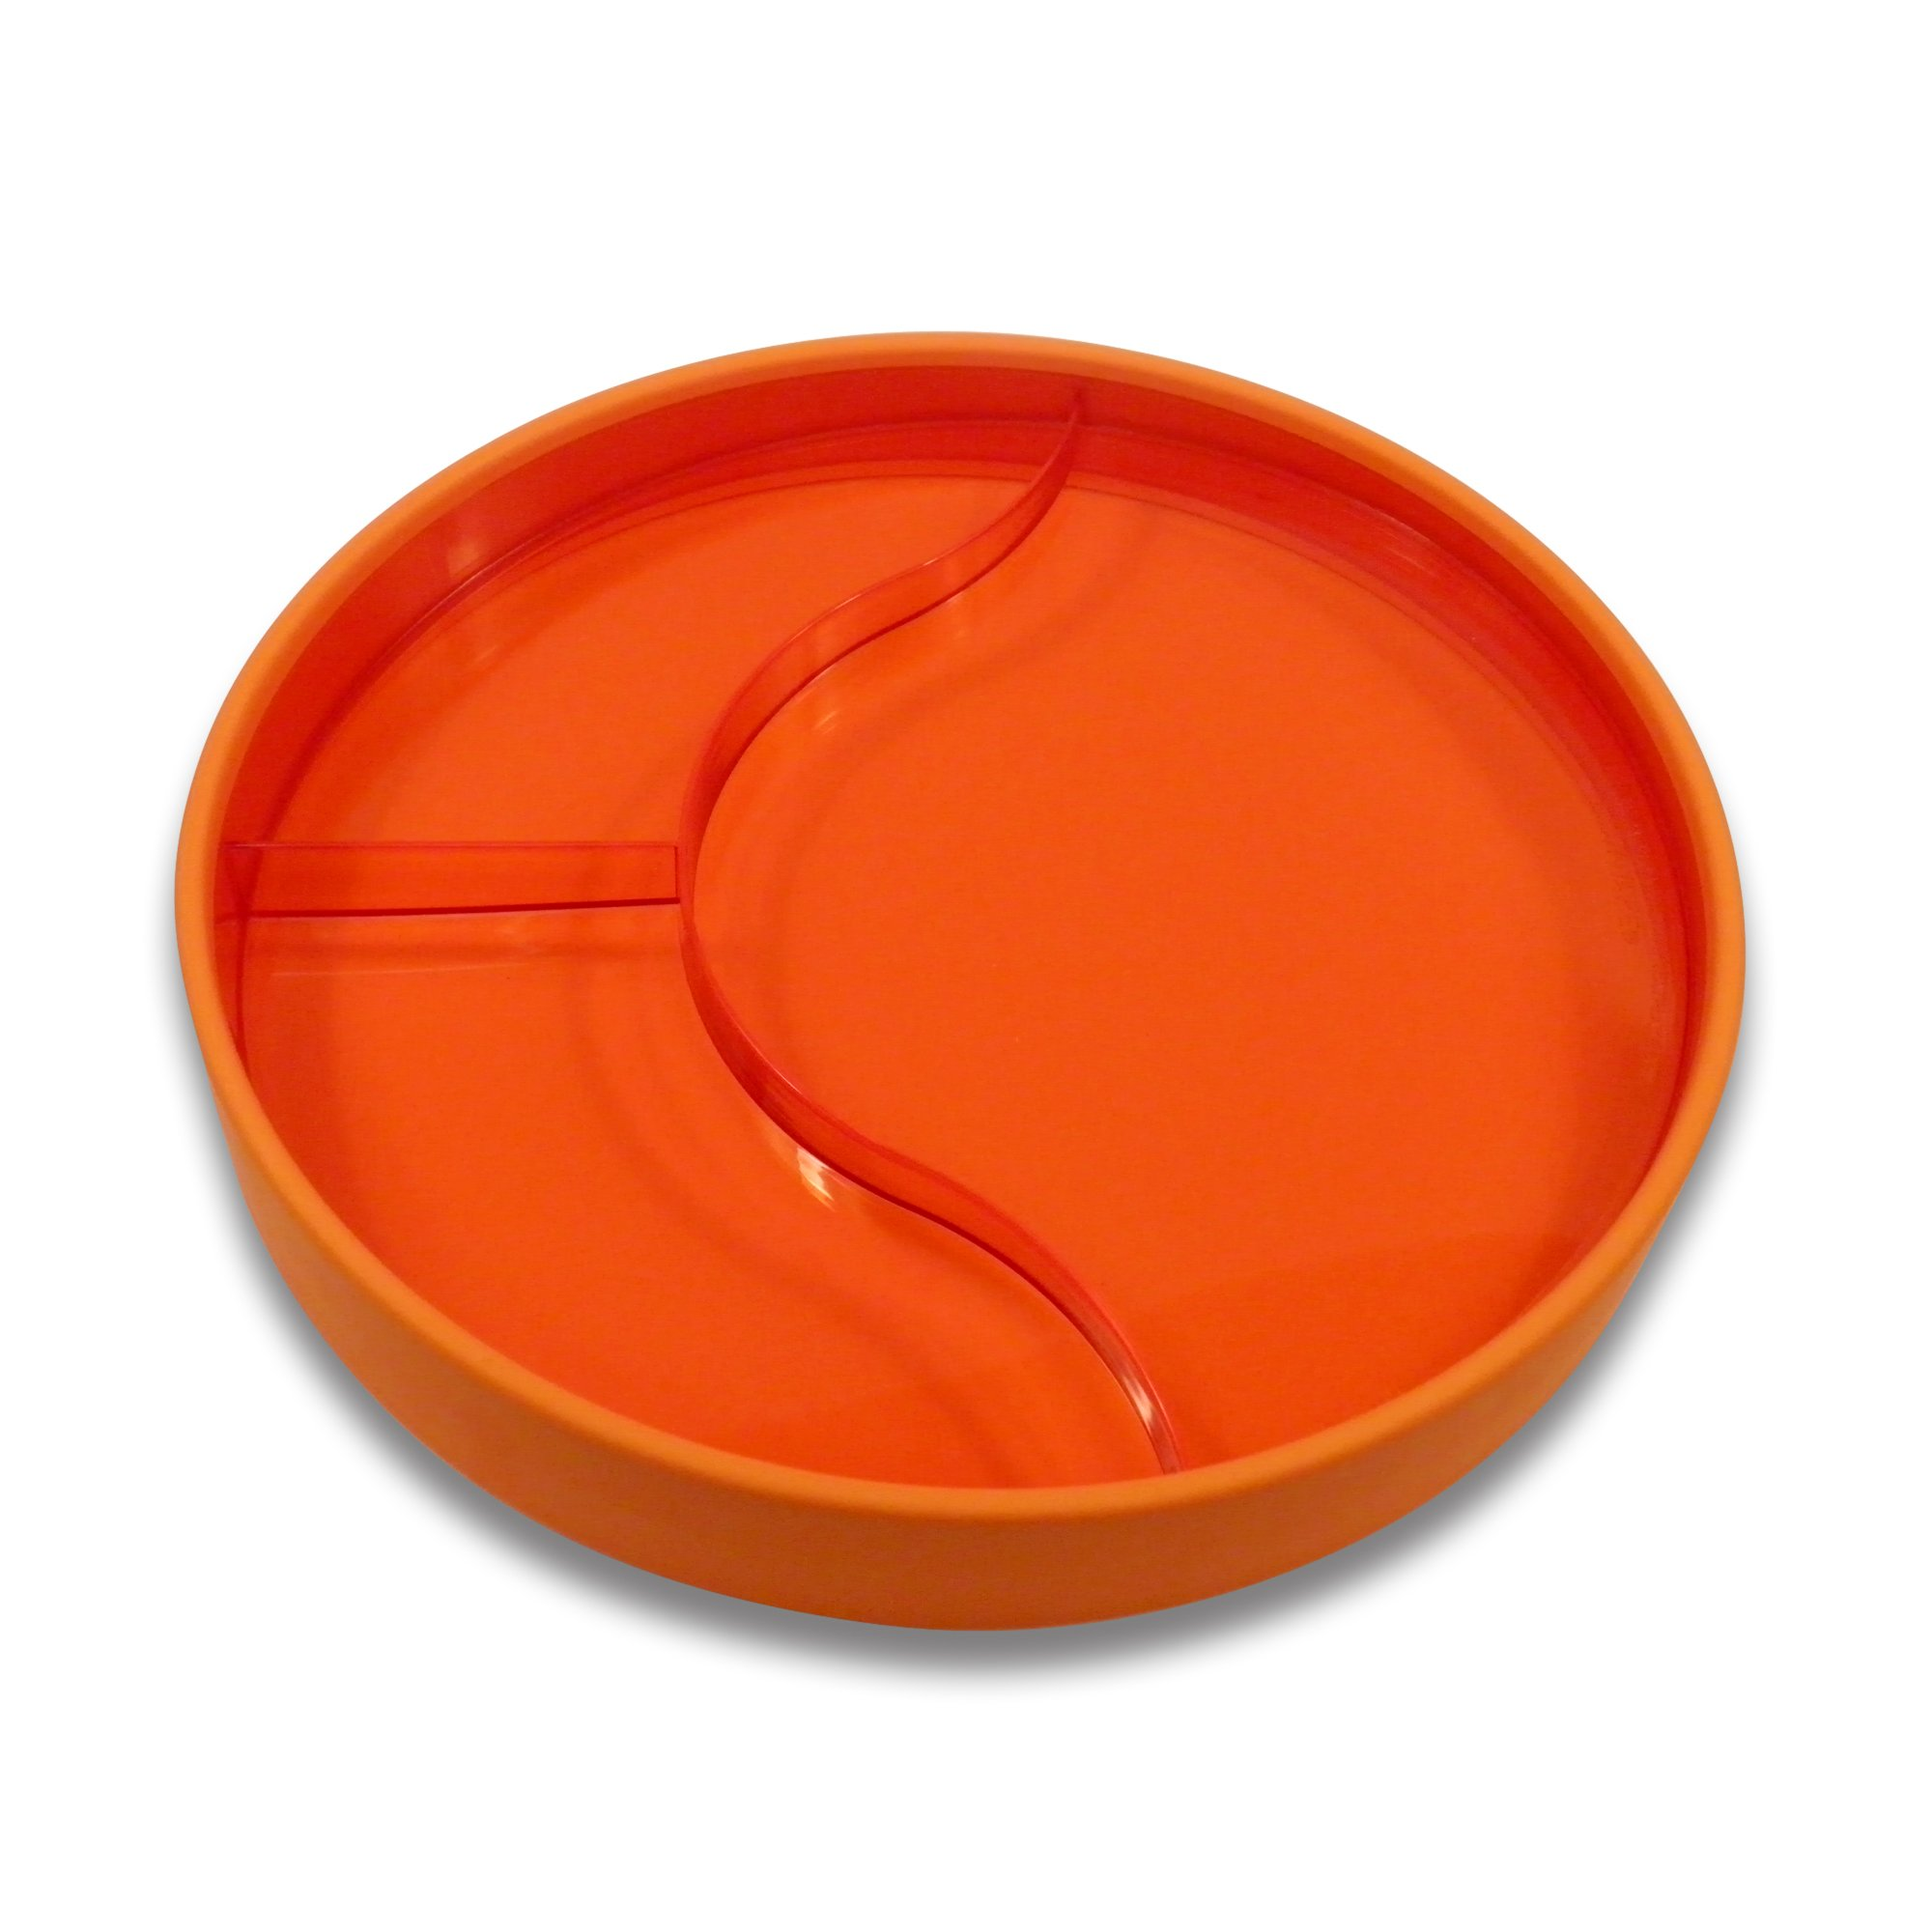 STAYnEAT Jr. Reversible Suction Plate, 2 Sided, Sloped, Divided 7.5'' Transparent Orange